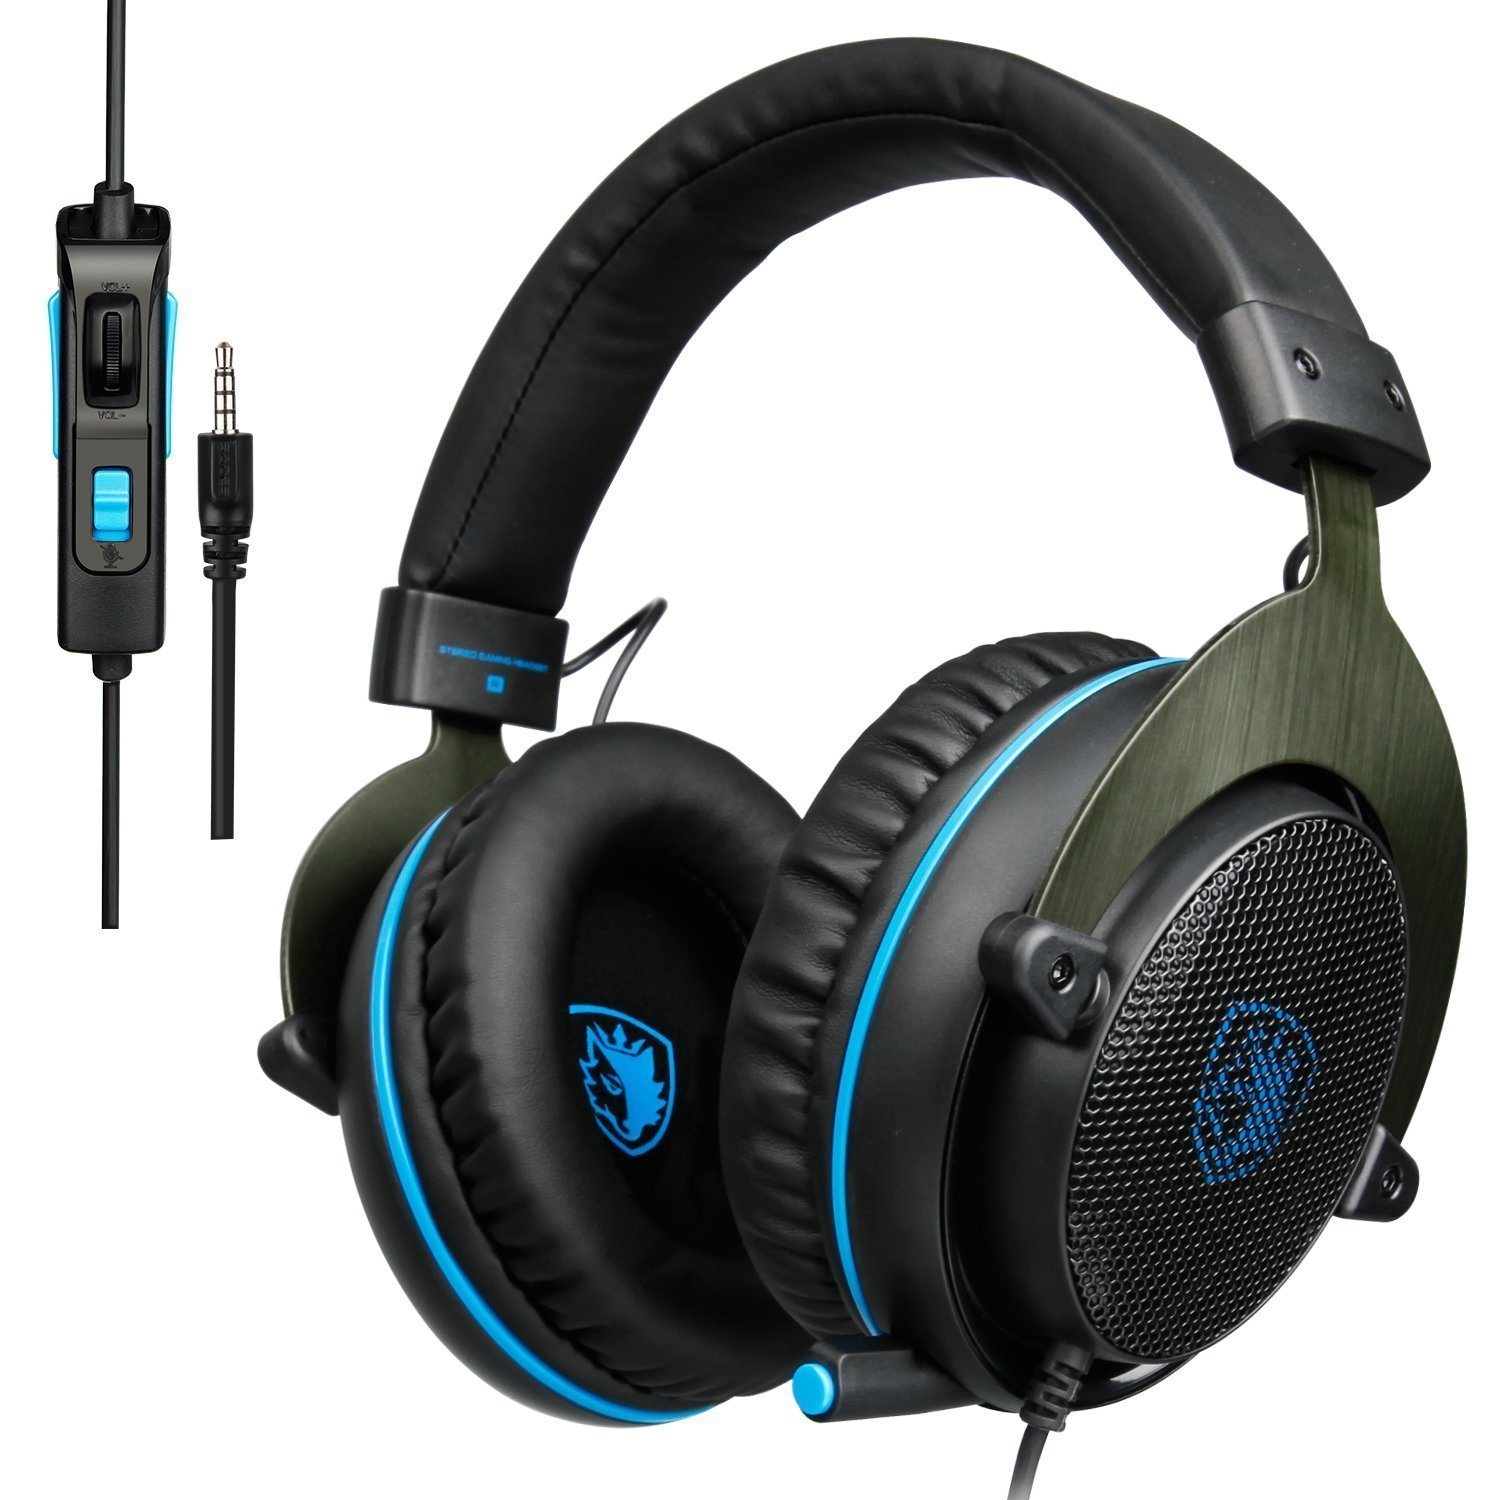 3f05646ee50 SADES Newest R3 Over-Ear Noise-isolating Stereo Gaming Headset Headband  Headphones with Mic Volume-Control Deep Bass for PC  Computers/Mac/Laptop/New Xbox ...